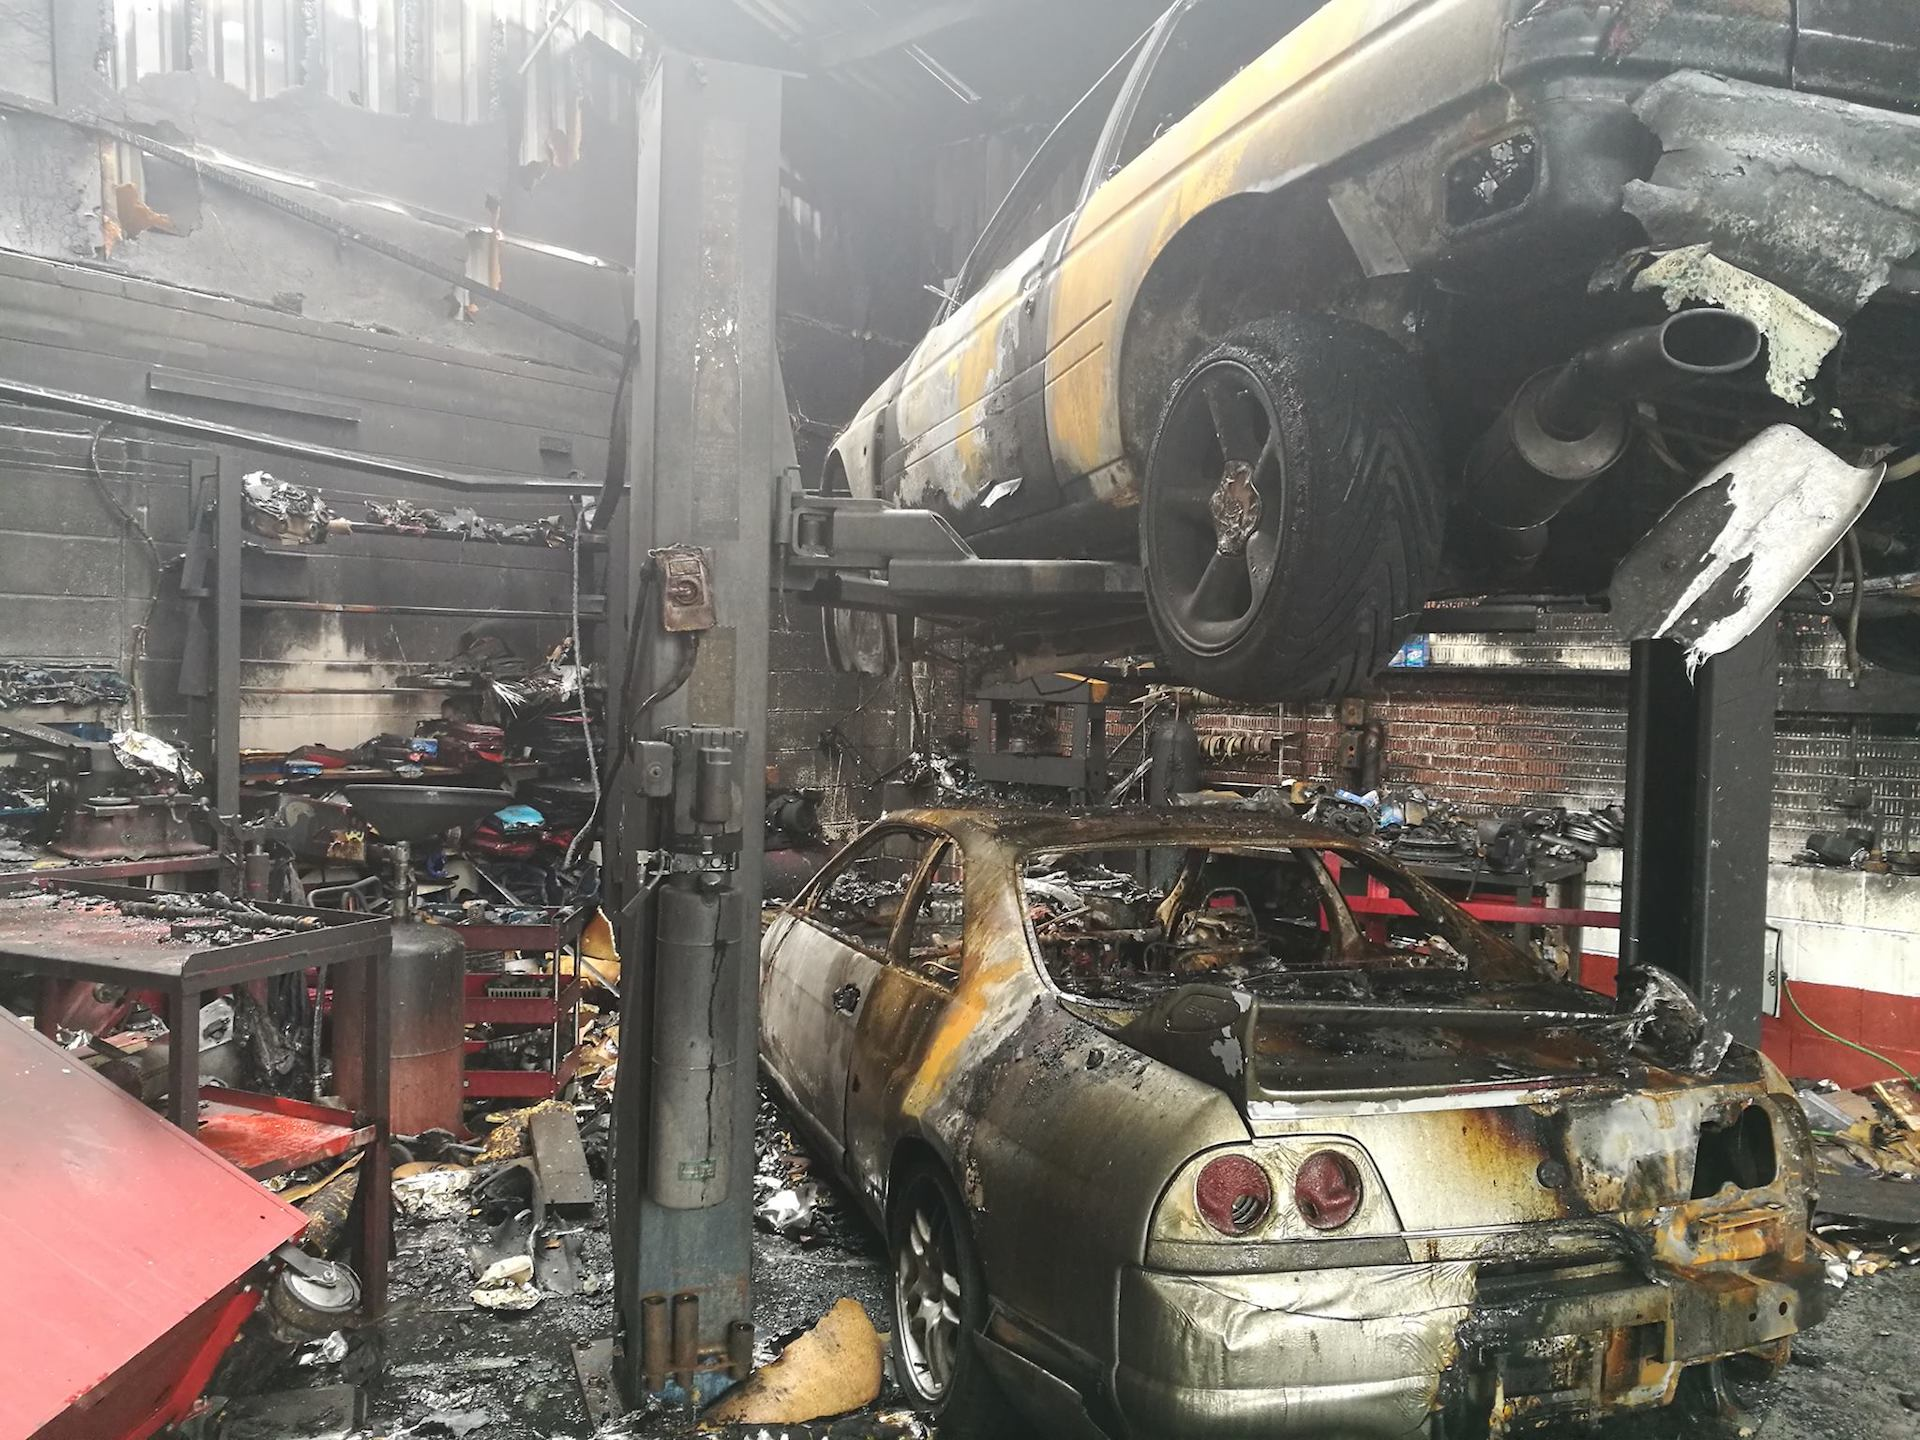 Jdm Cars For Sale >> Nissan GT-R hoard destroyed in specialty shop fire